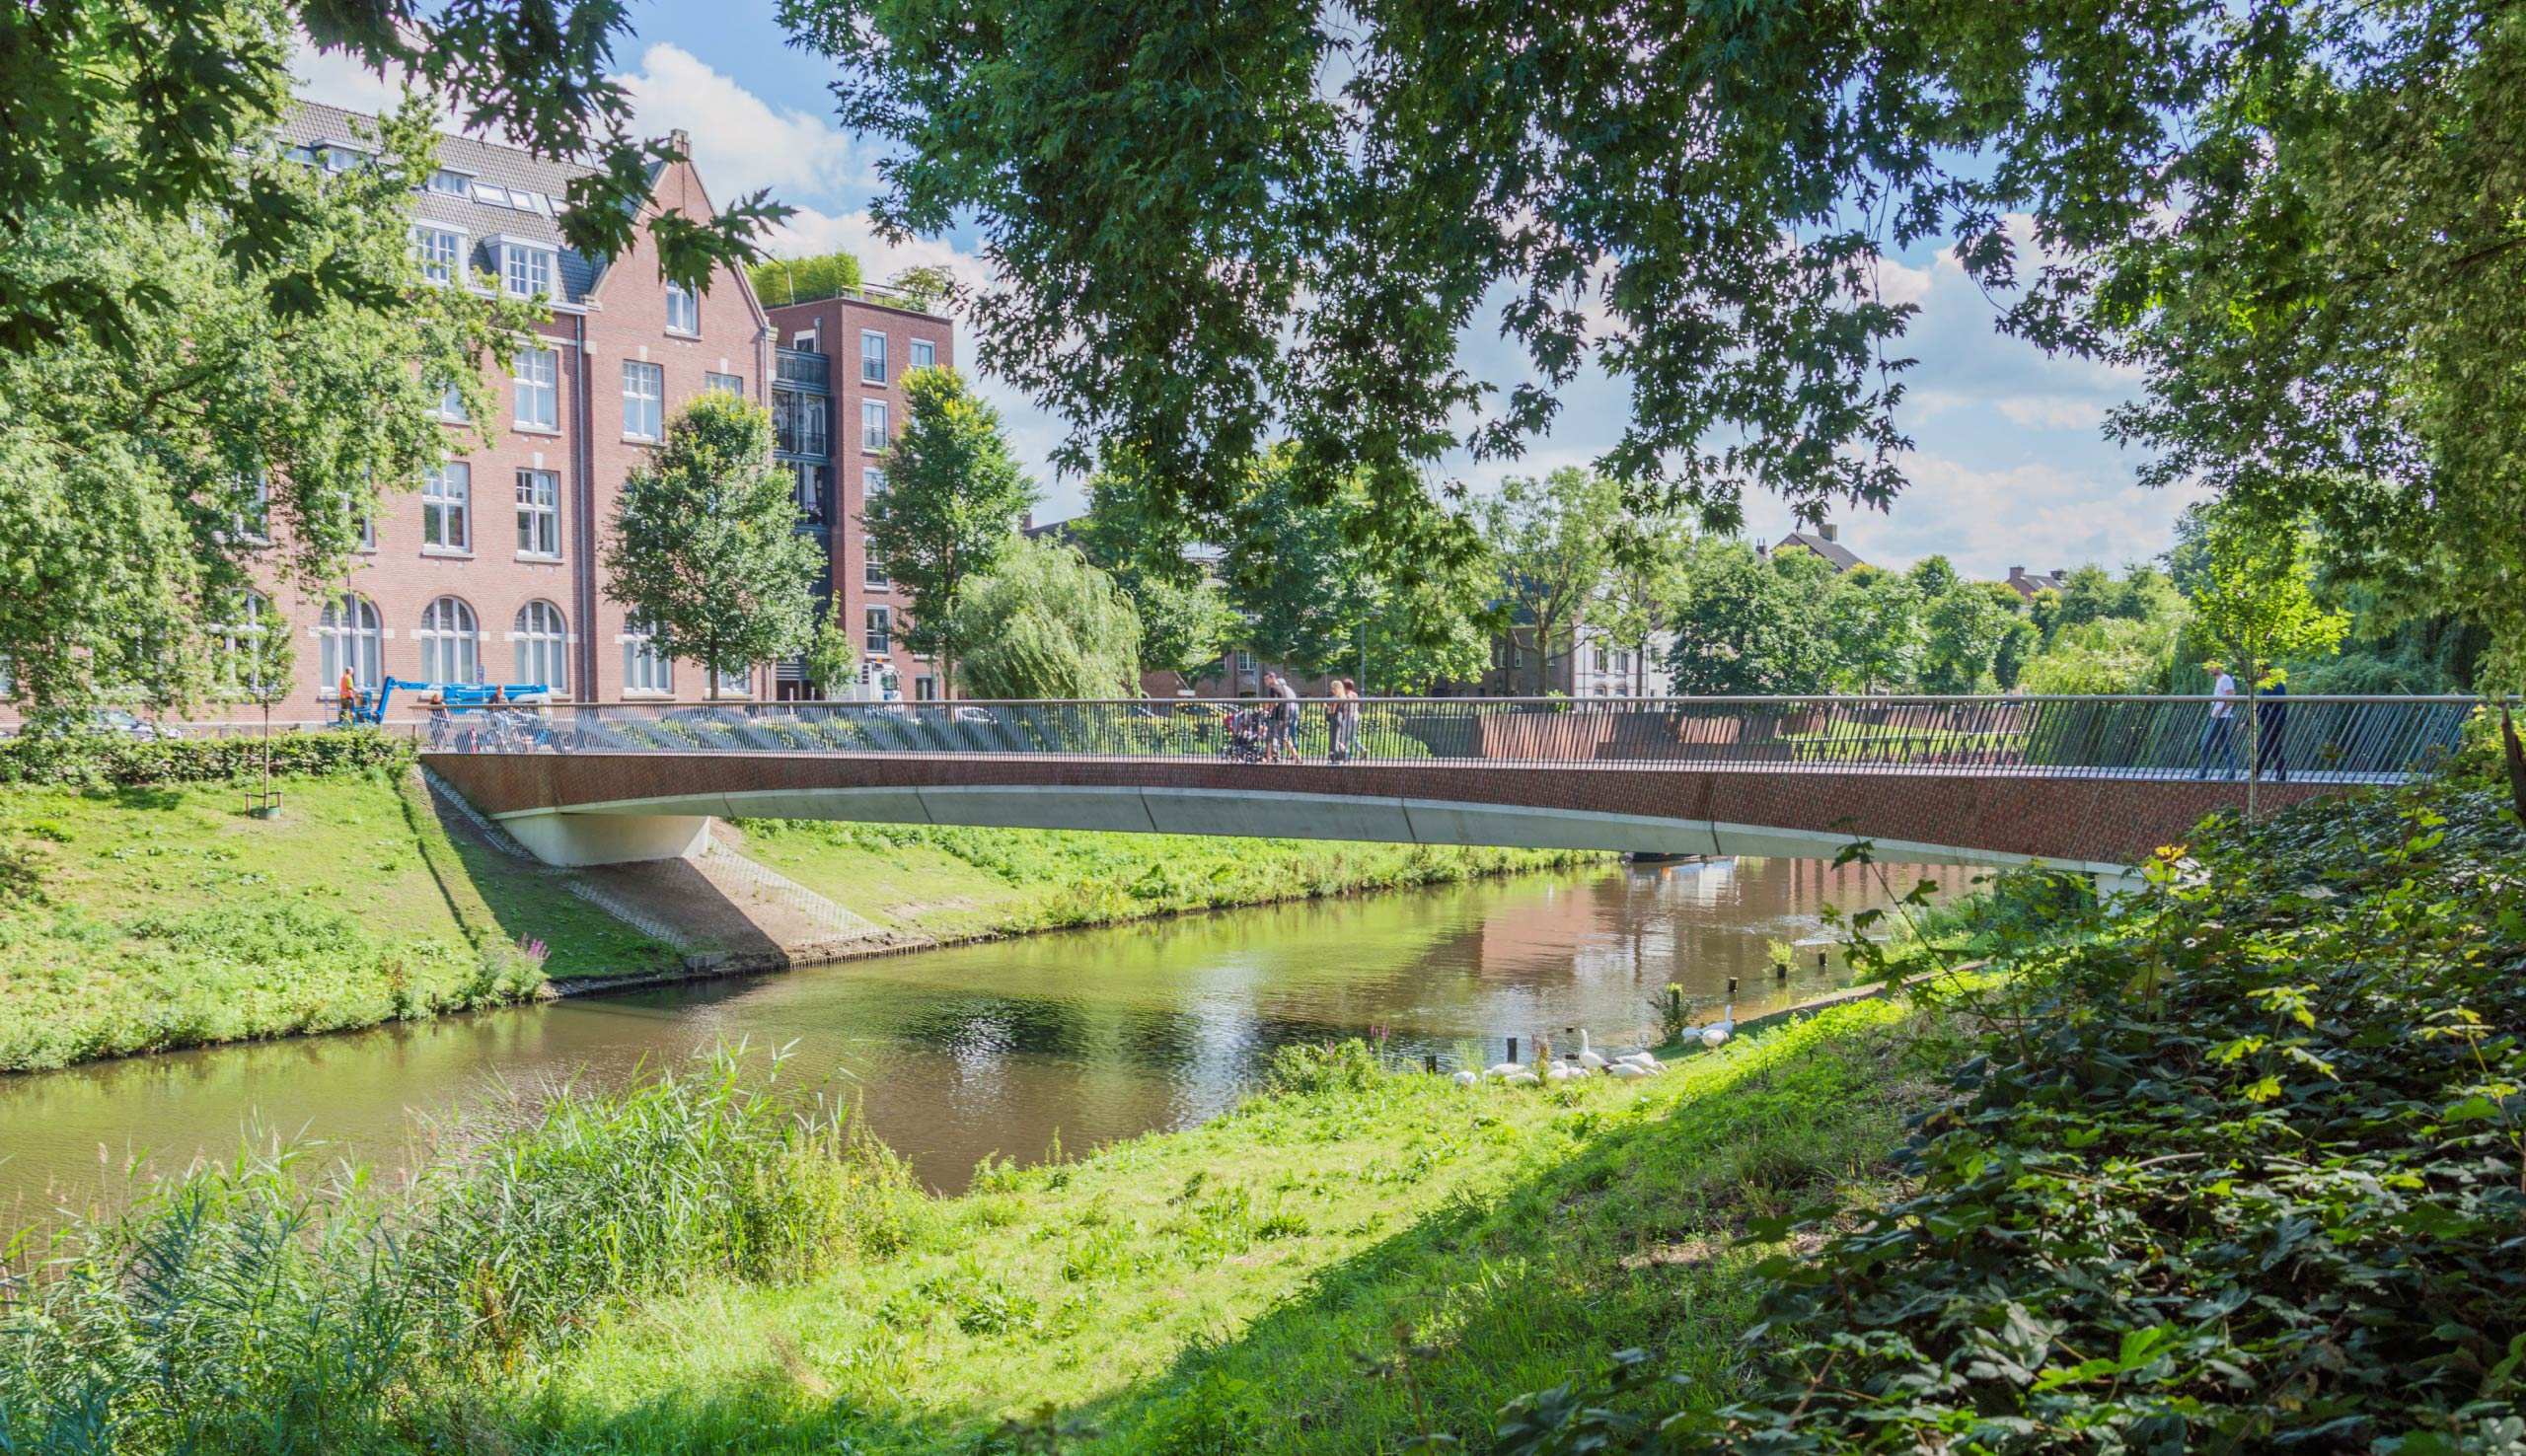 The New Maria Bridge Den Bosch